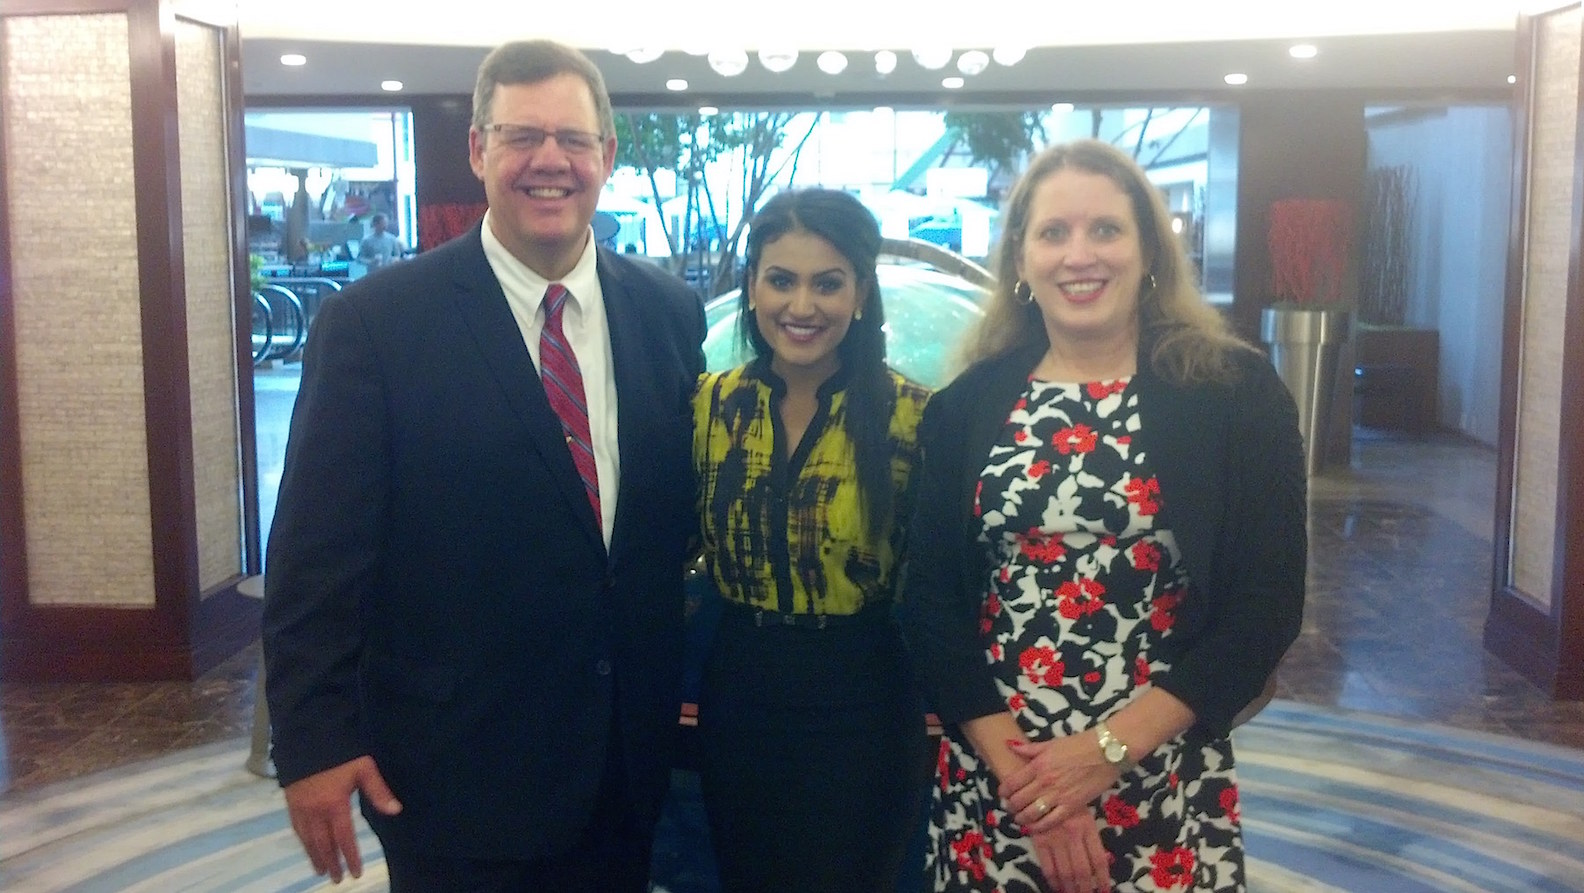 Mike and Deb with Miss America 2014 Nina Davuluri, center, whom Deb arranged to have speak at the Twentieth Century Club on behalf of the Erie County Commission on the Status of Women. Davuluri is from Syracuse.